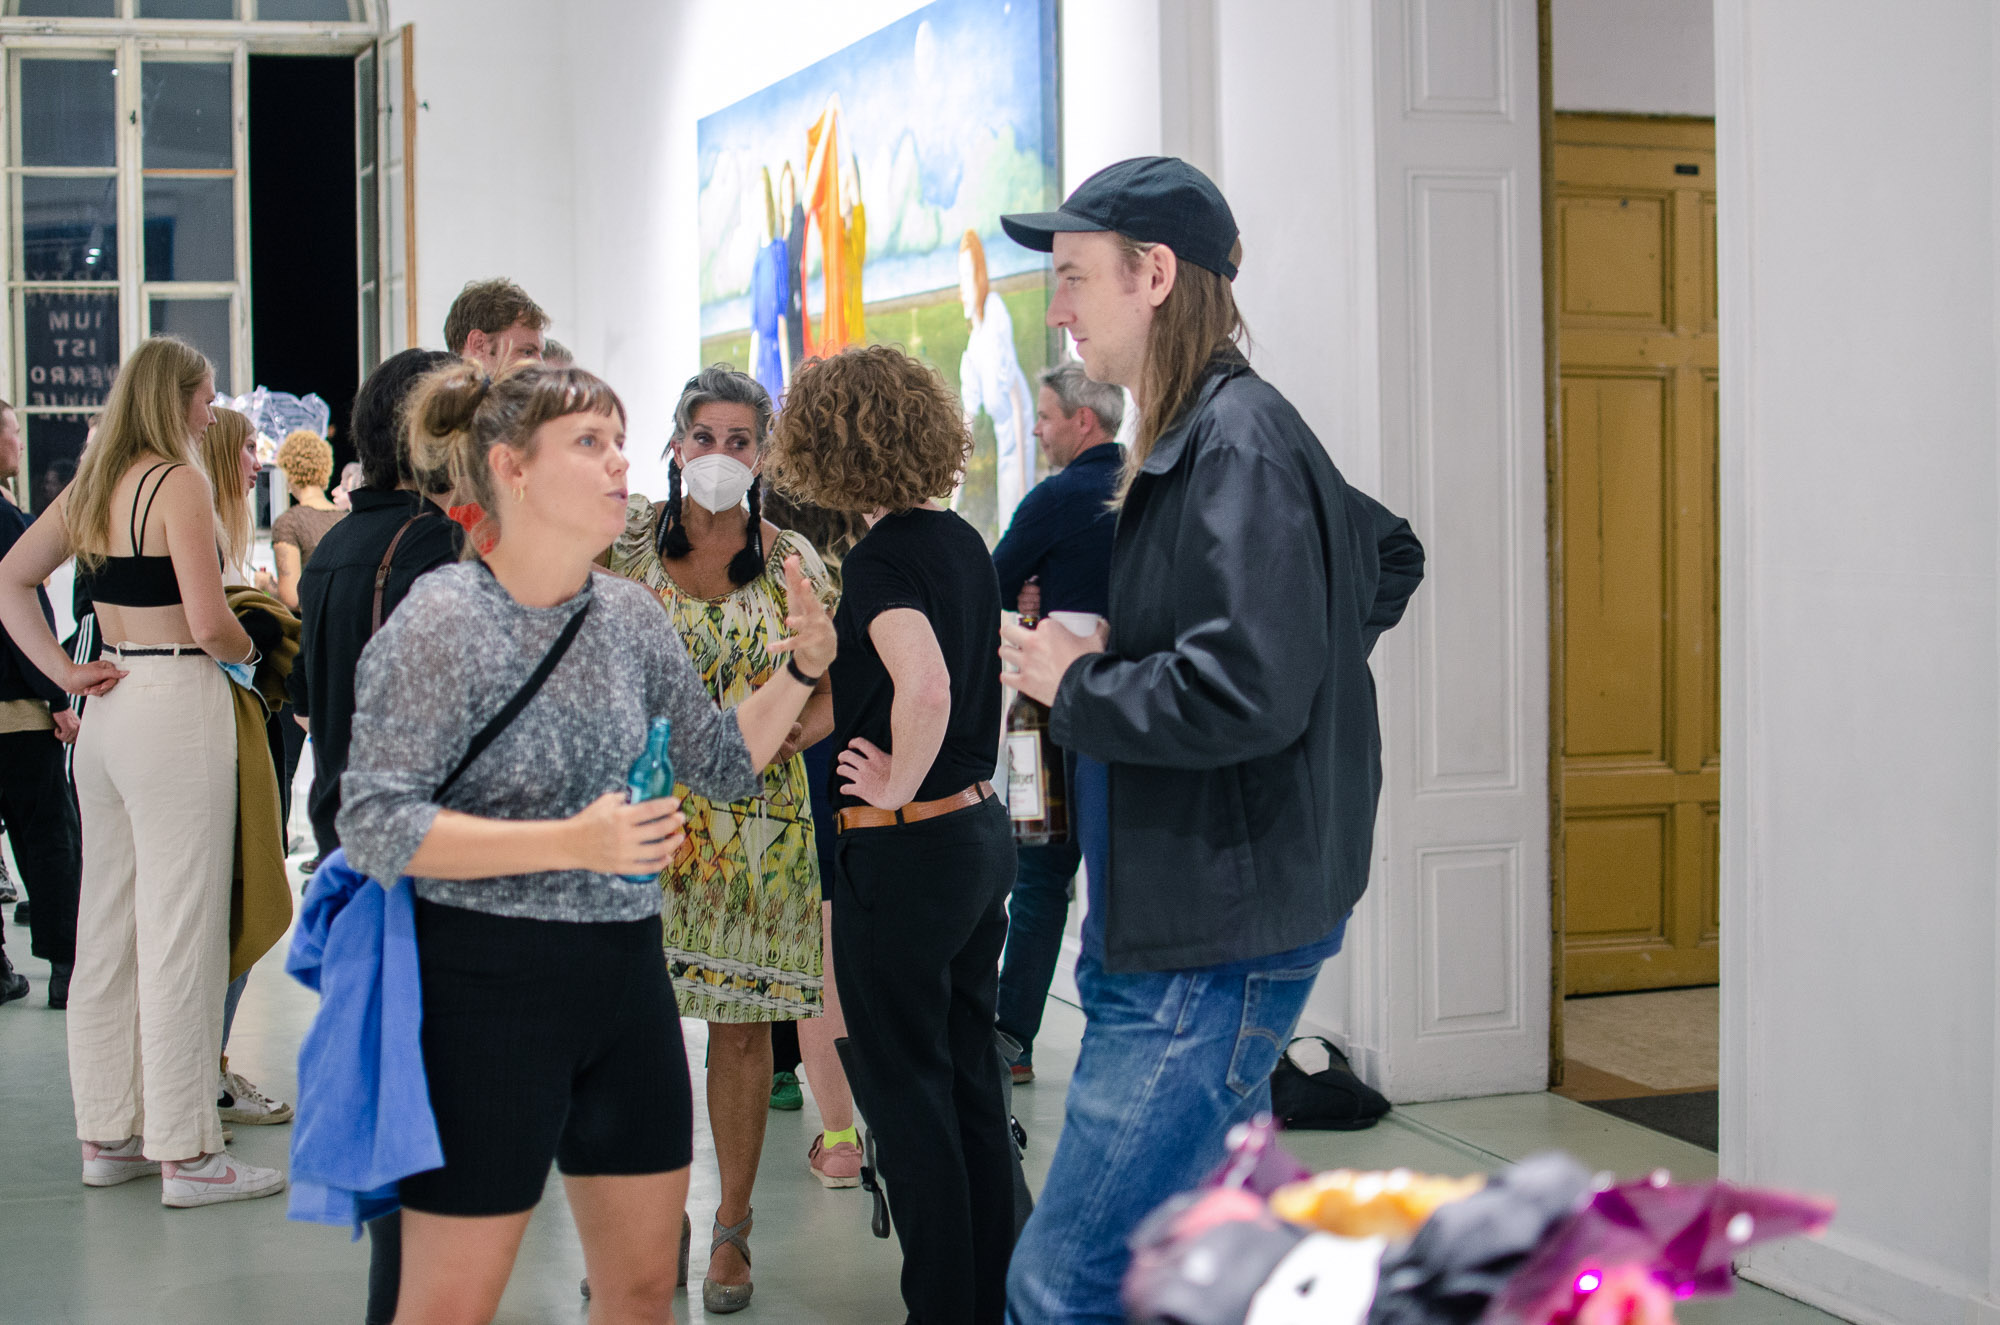 PKRD-48-Airy-Democratic-Spirituality-vernissage-PK-at-Alte-Handlesschule-20.08.21-Fanni-Papp-for-PK-27